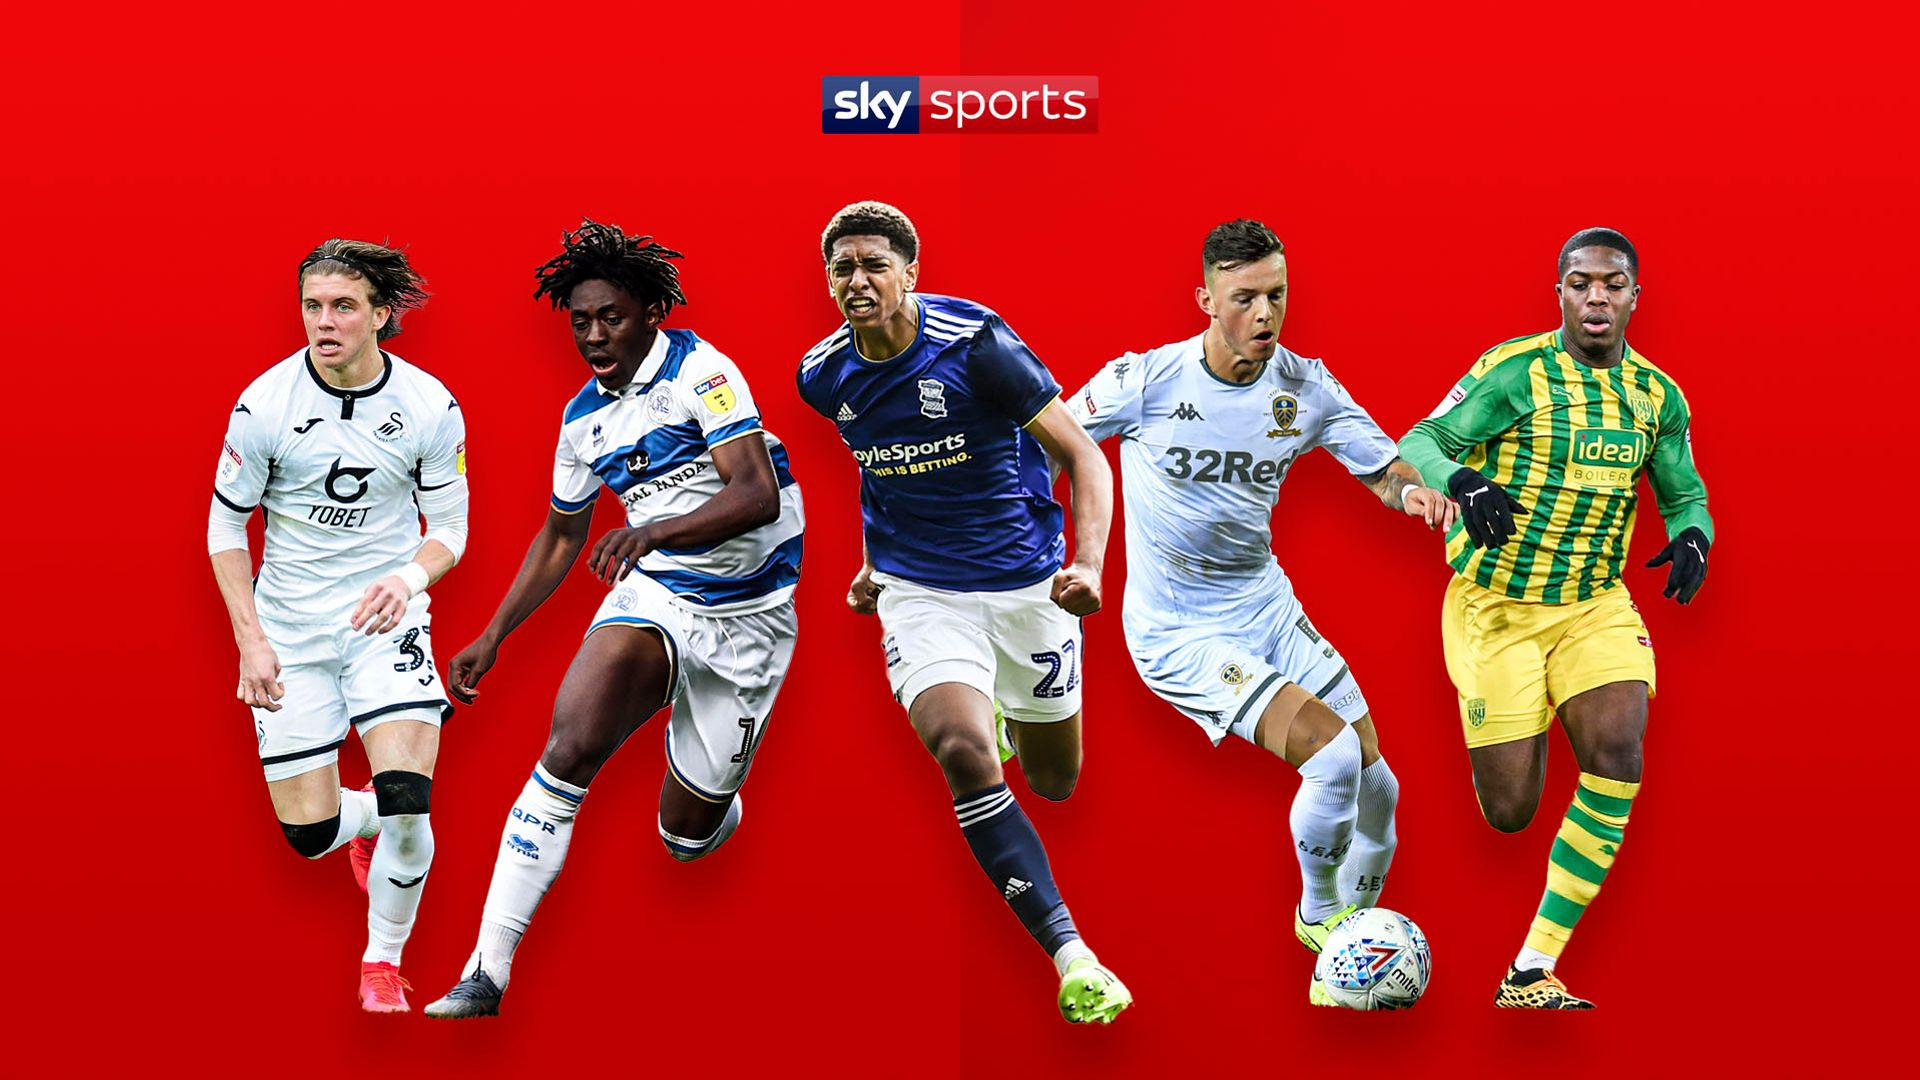 Sky to show 30 games as Championship restarts on June 20